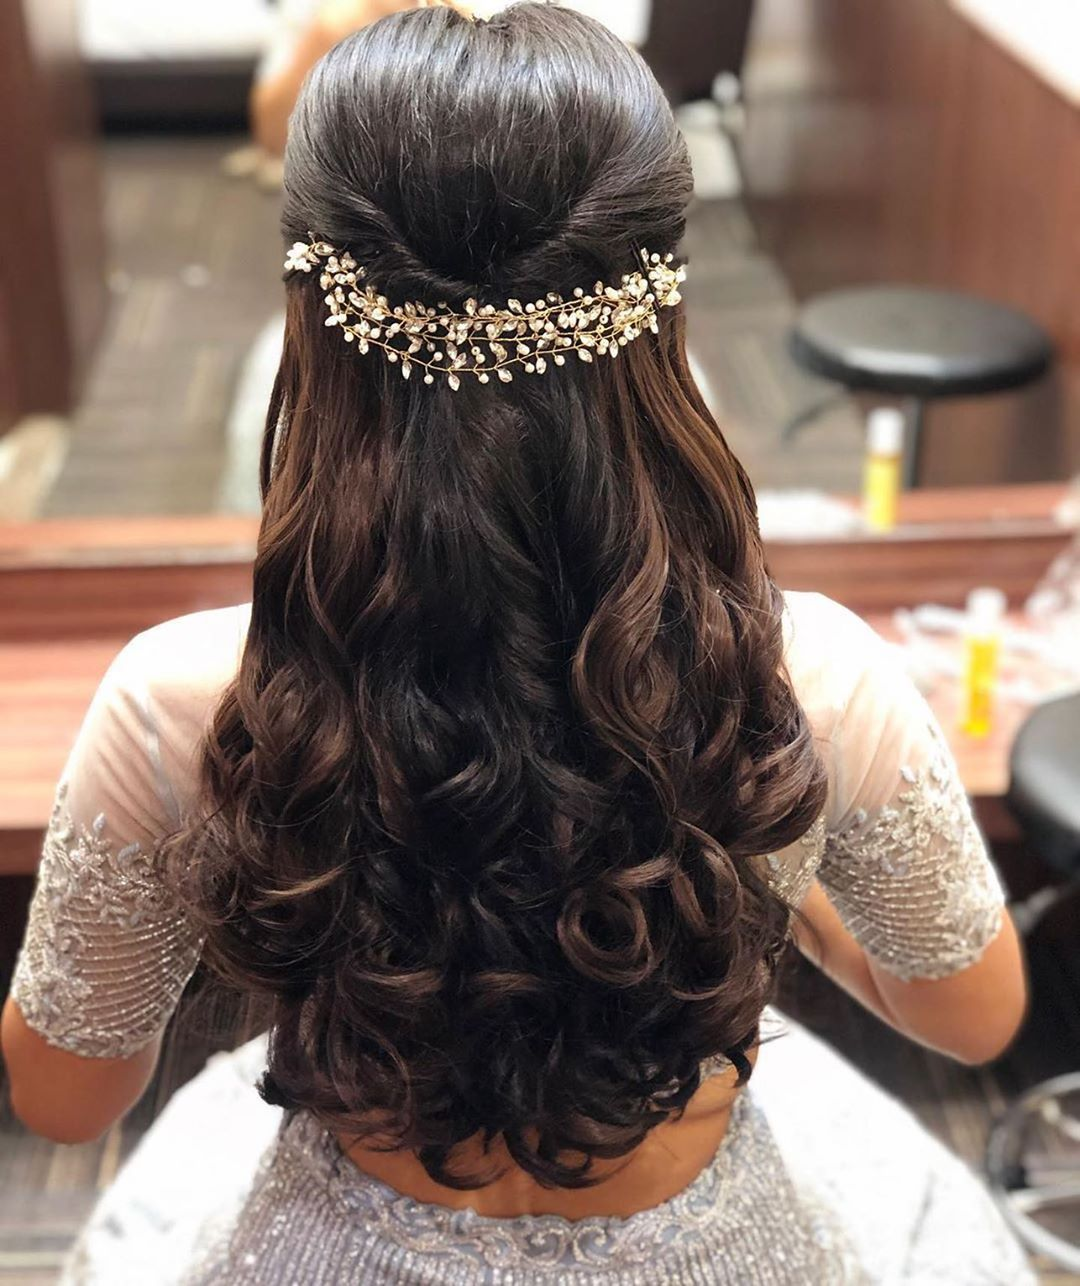 Open Hairstyle Ideas For The Indian Bride In 2020 Engagement Hairstyles Bridal Hair Buns Open Hairstyles